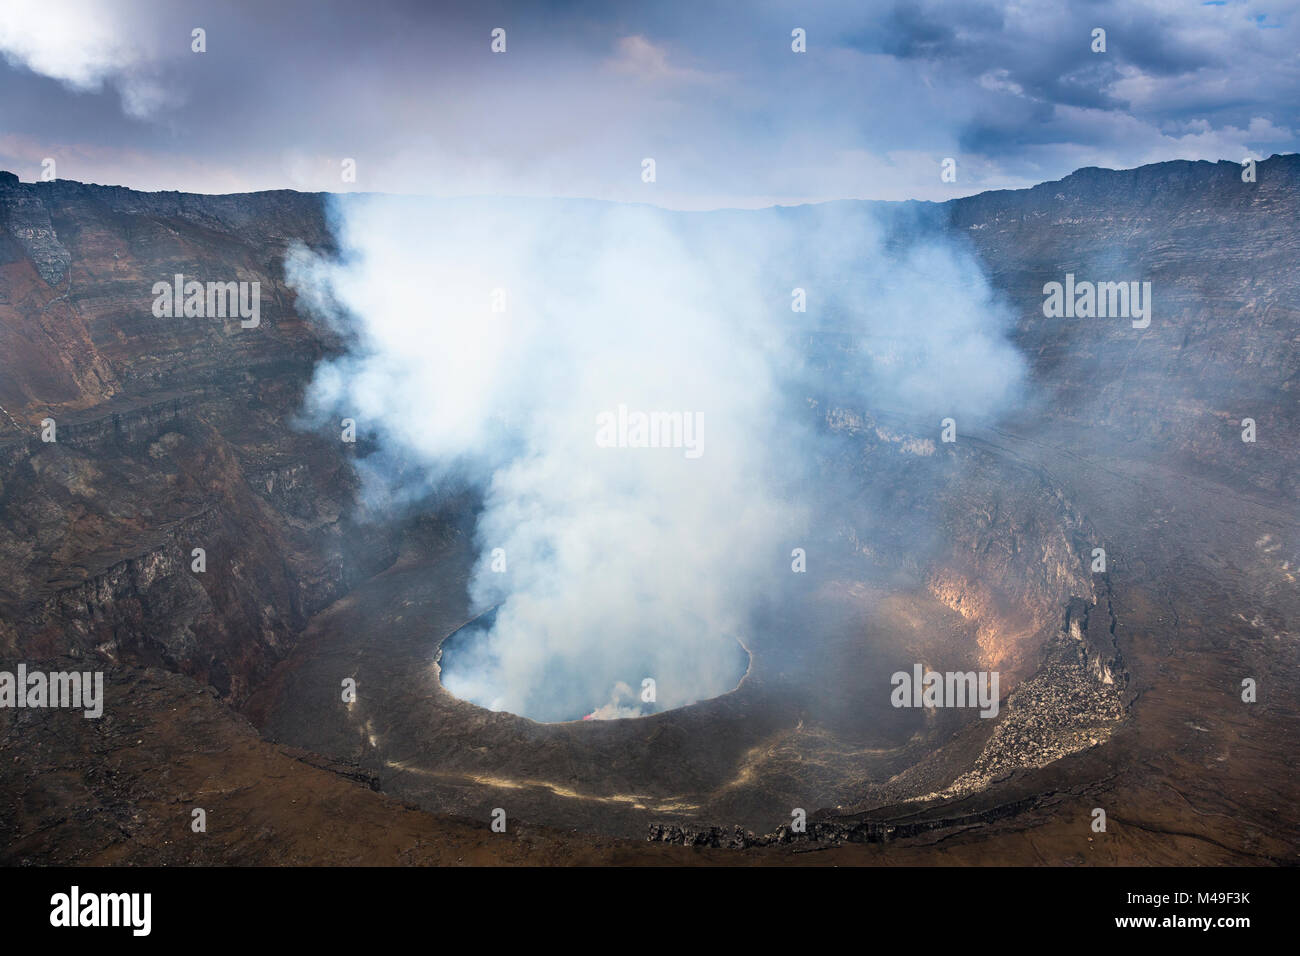 Steam rising from the crater of Nyiragongo Volcano. Virunga National Park, North Kivu Province, Democratic Republic - Stock Image